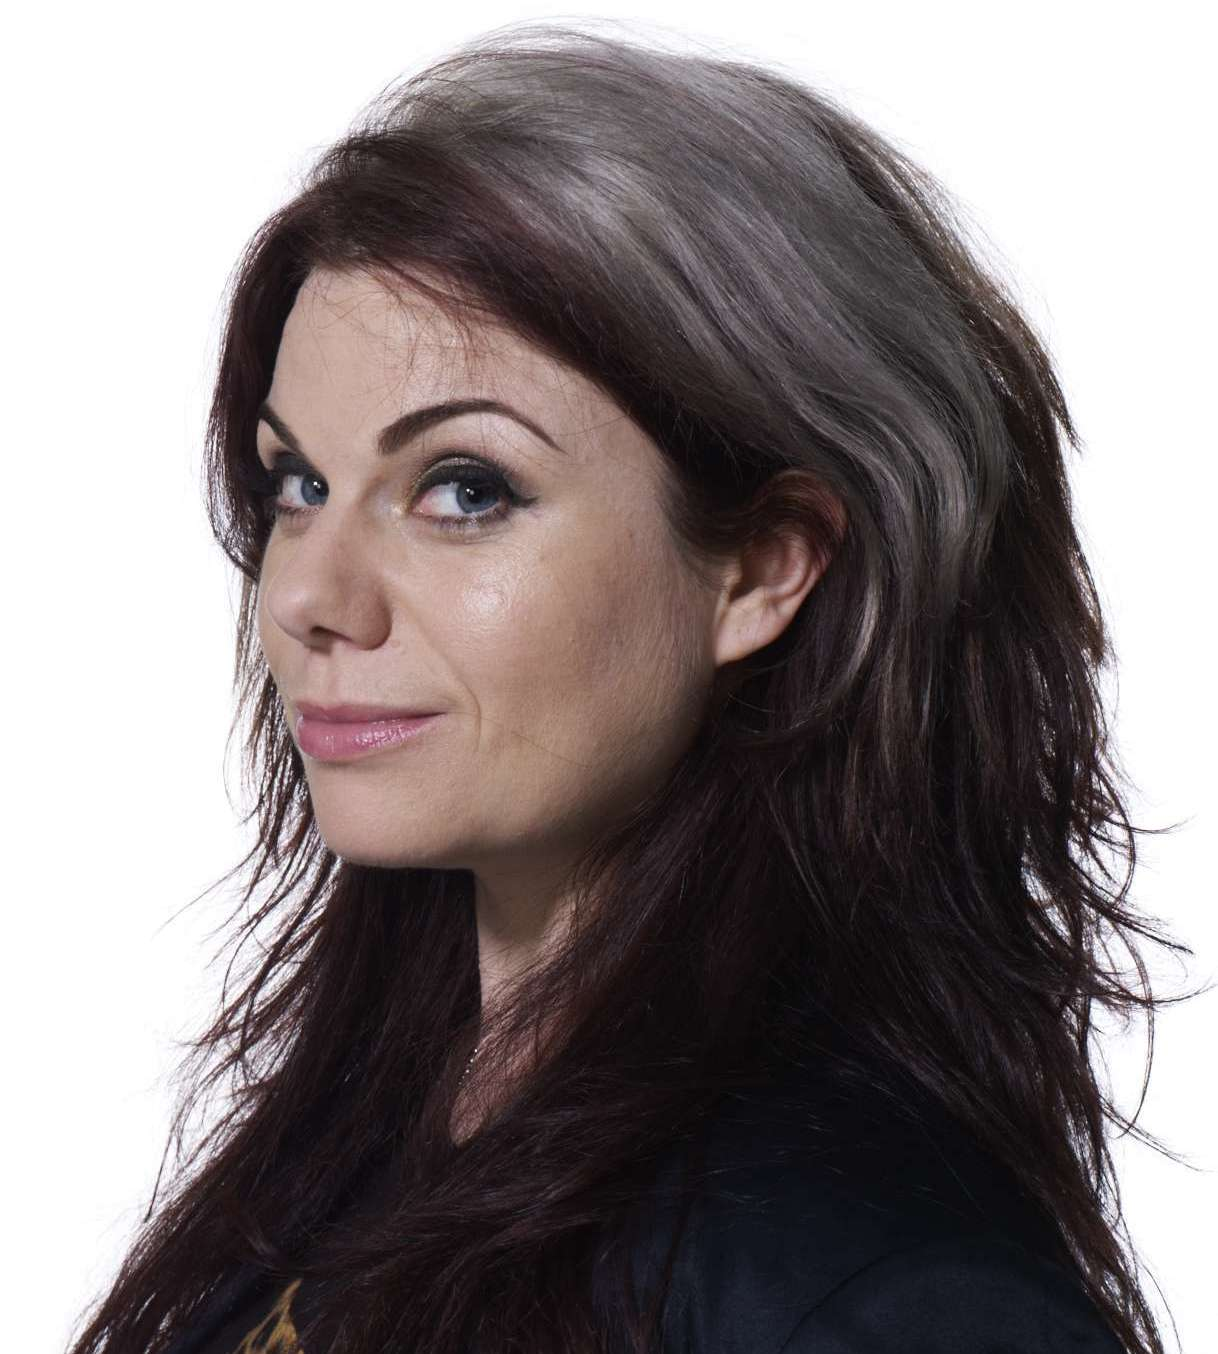 Anything by Caitlin Moran. Not least her tweets. She is hilarious, shocking and brave.